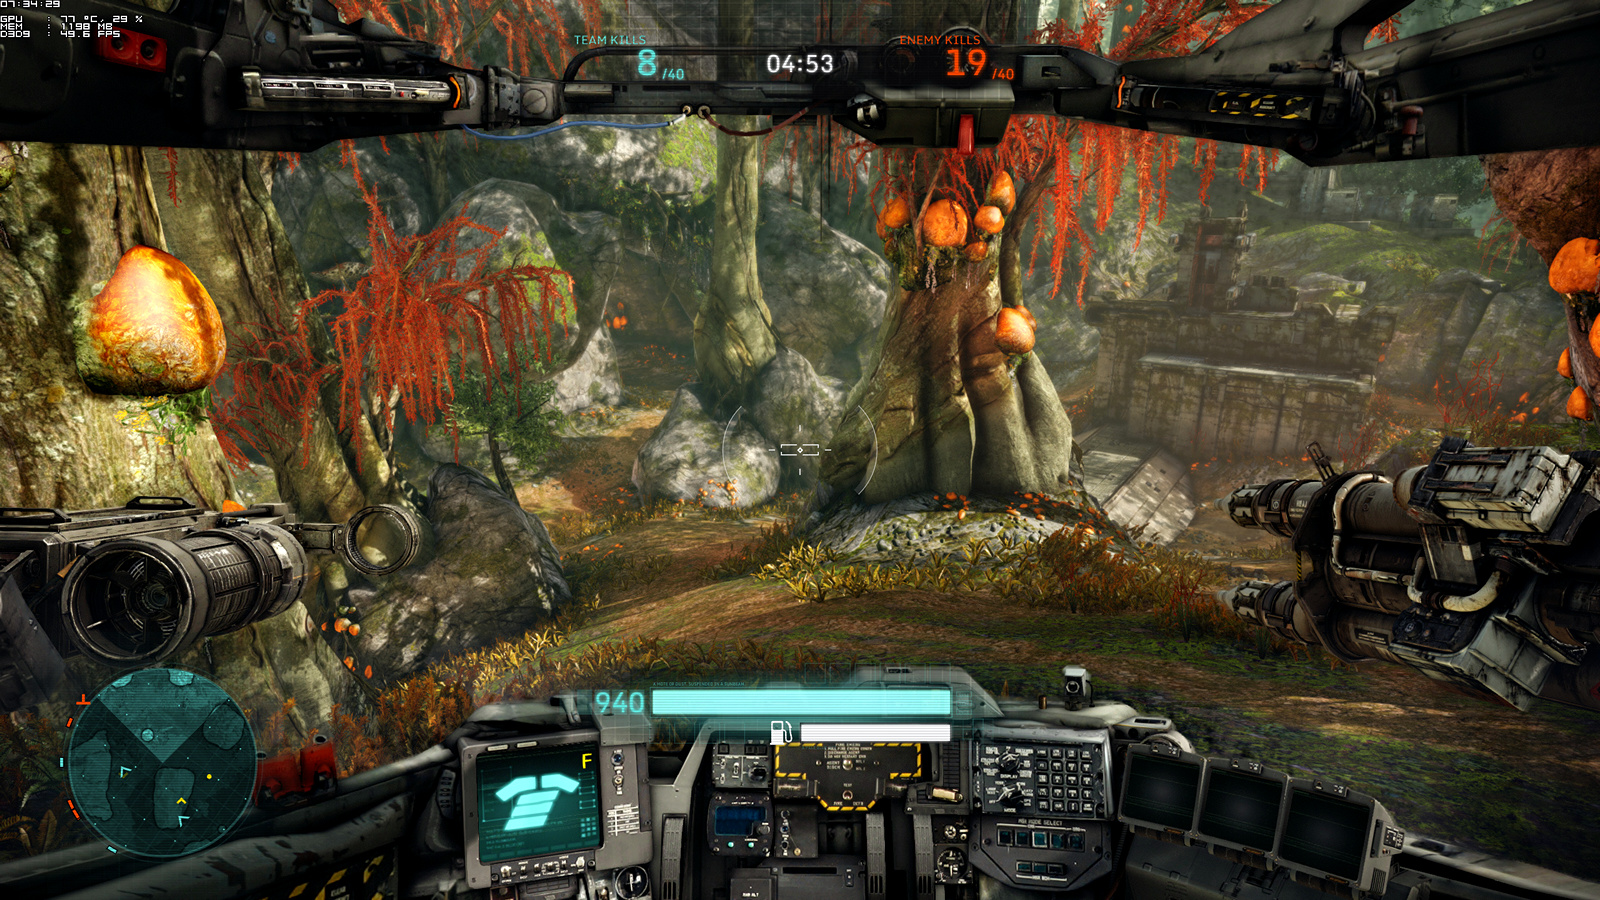 Betatest Hawken: Der F2P-UE3-Indie-Mech-Shooter - Die Map Last Eco (Screenshot: Marc Sauter/Golem.de)